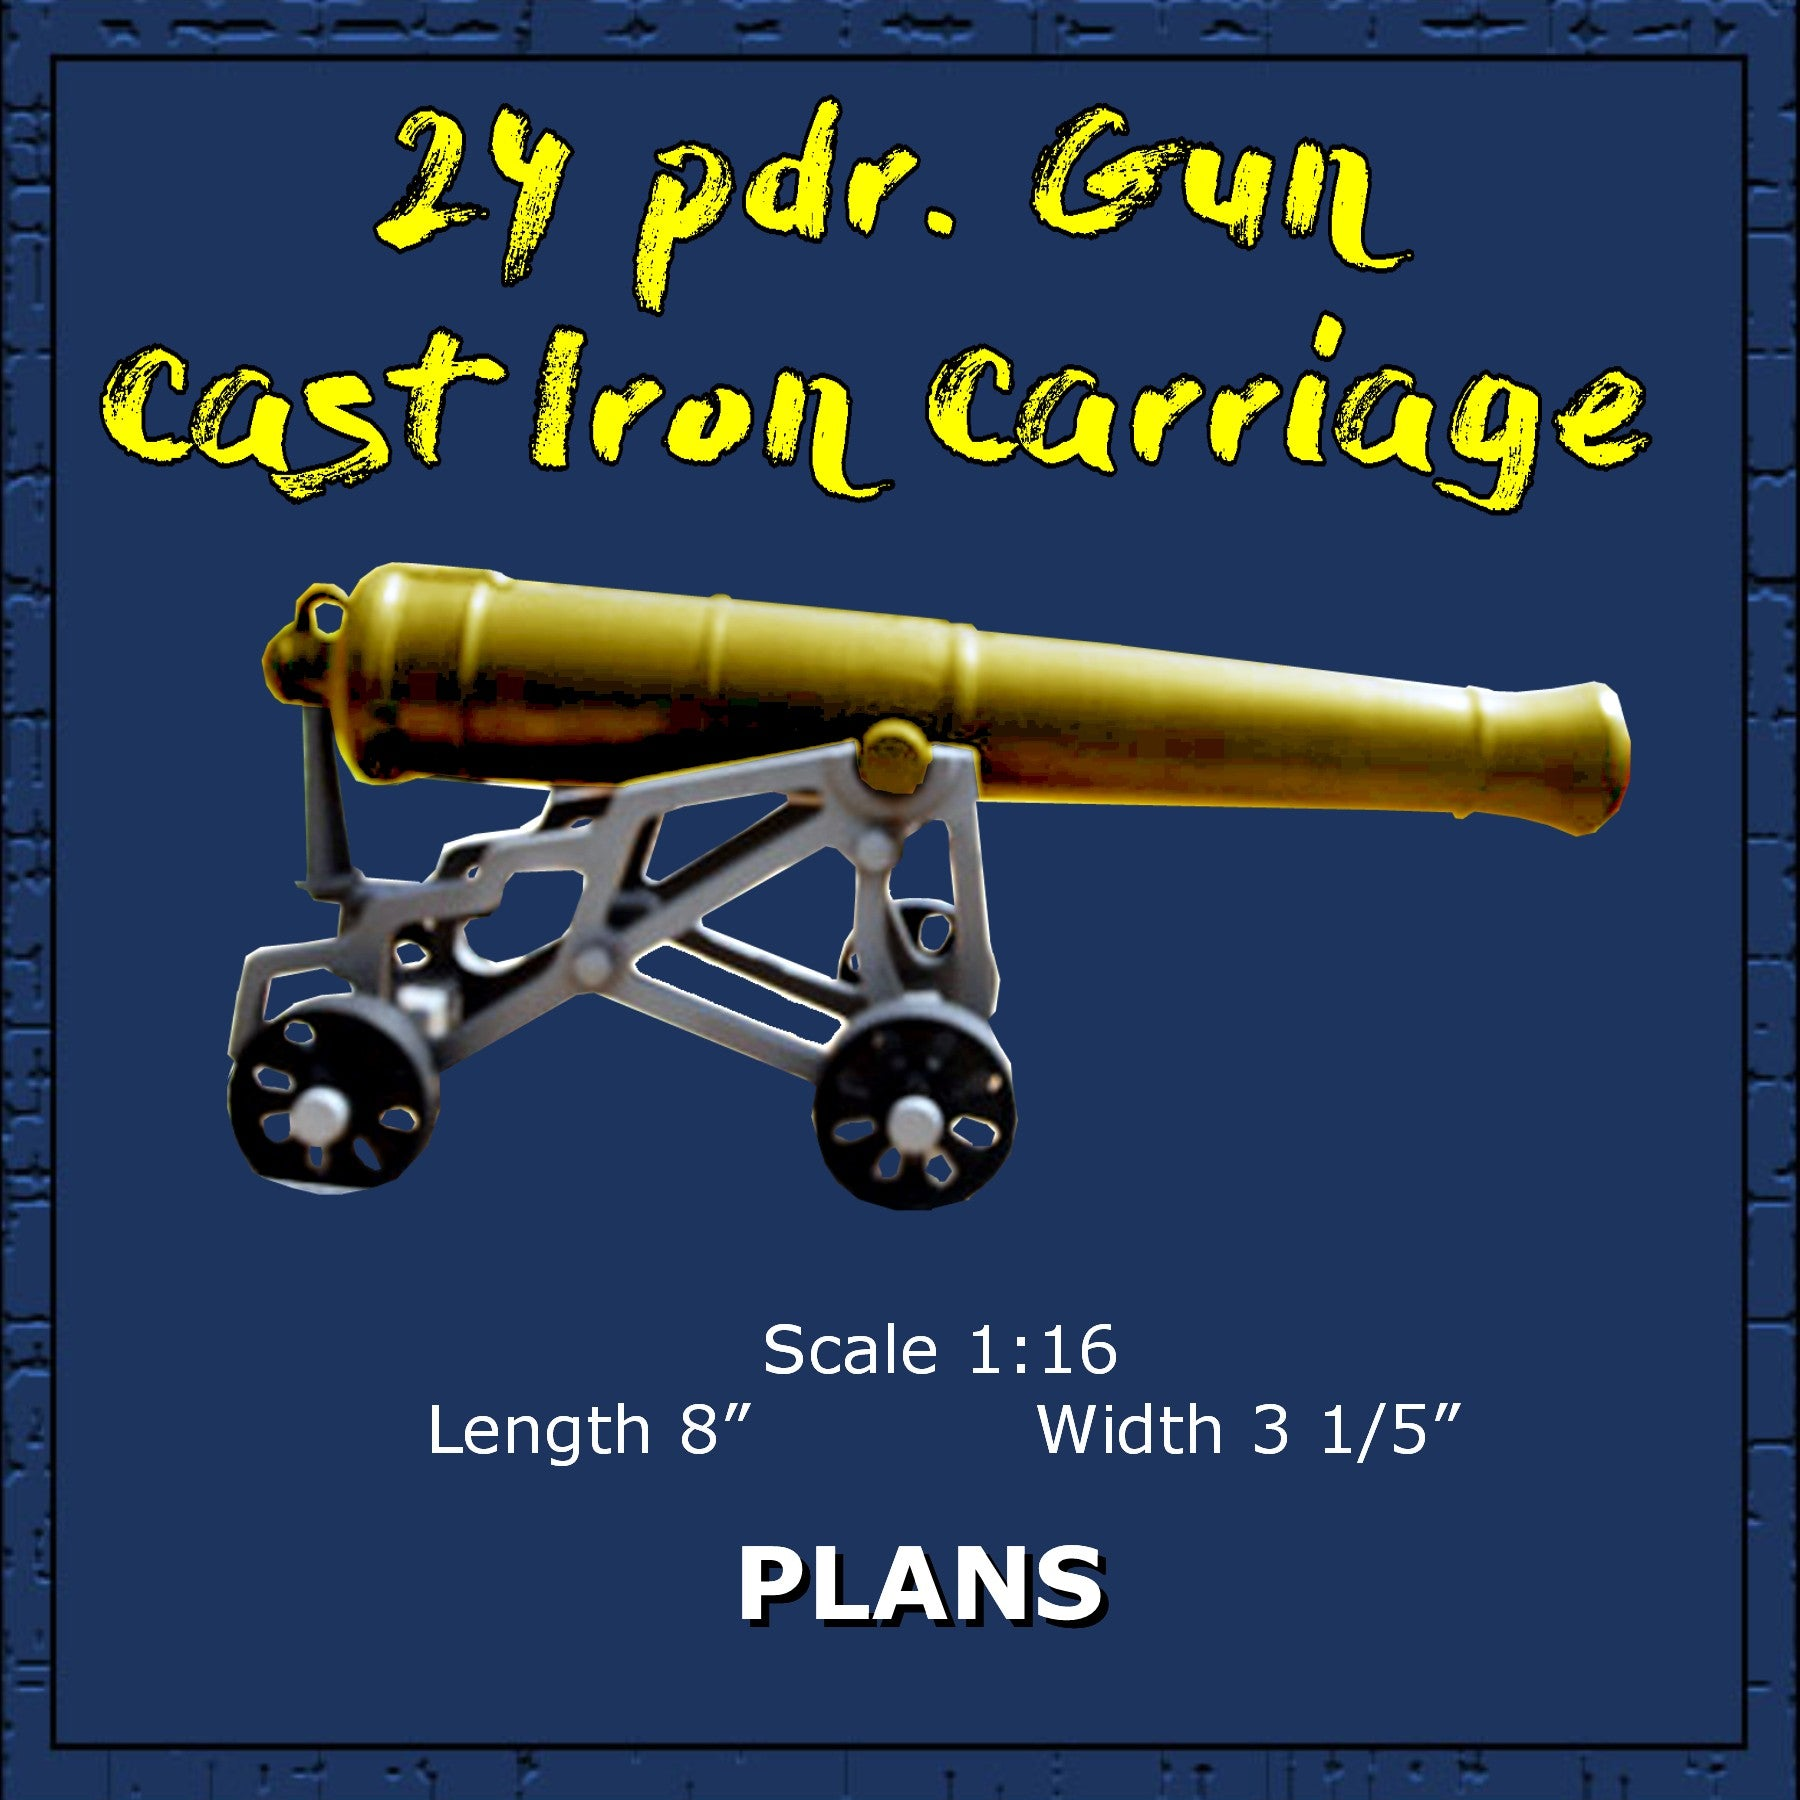 Full size Printed Plans and Article Scale 1:16  24 pdr. Gun with Cast Iron Carriage